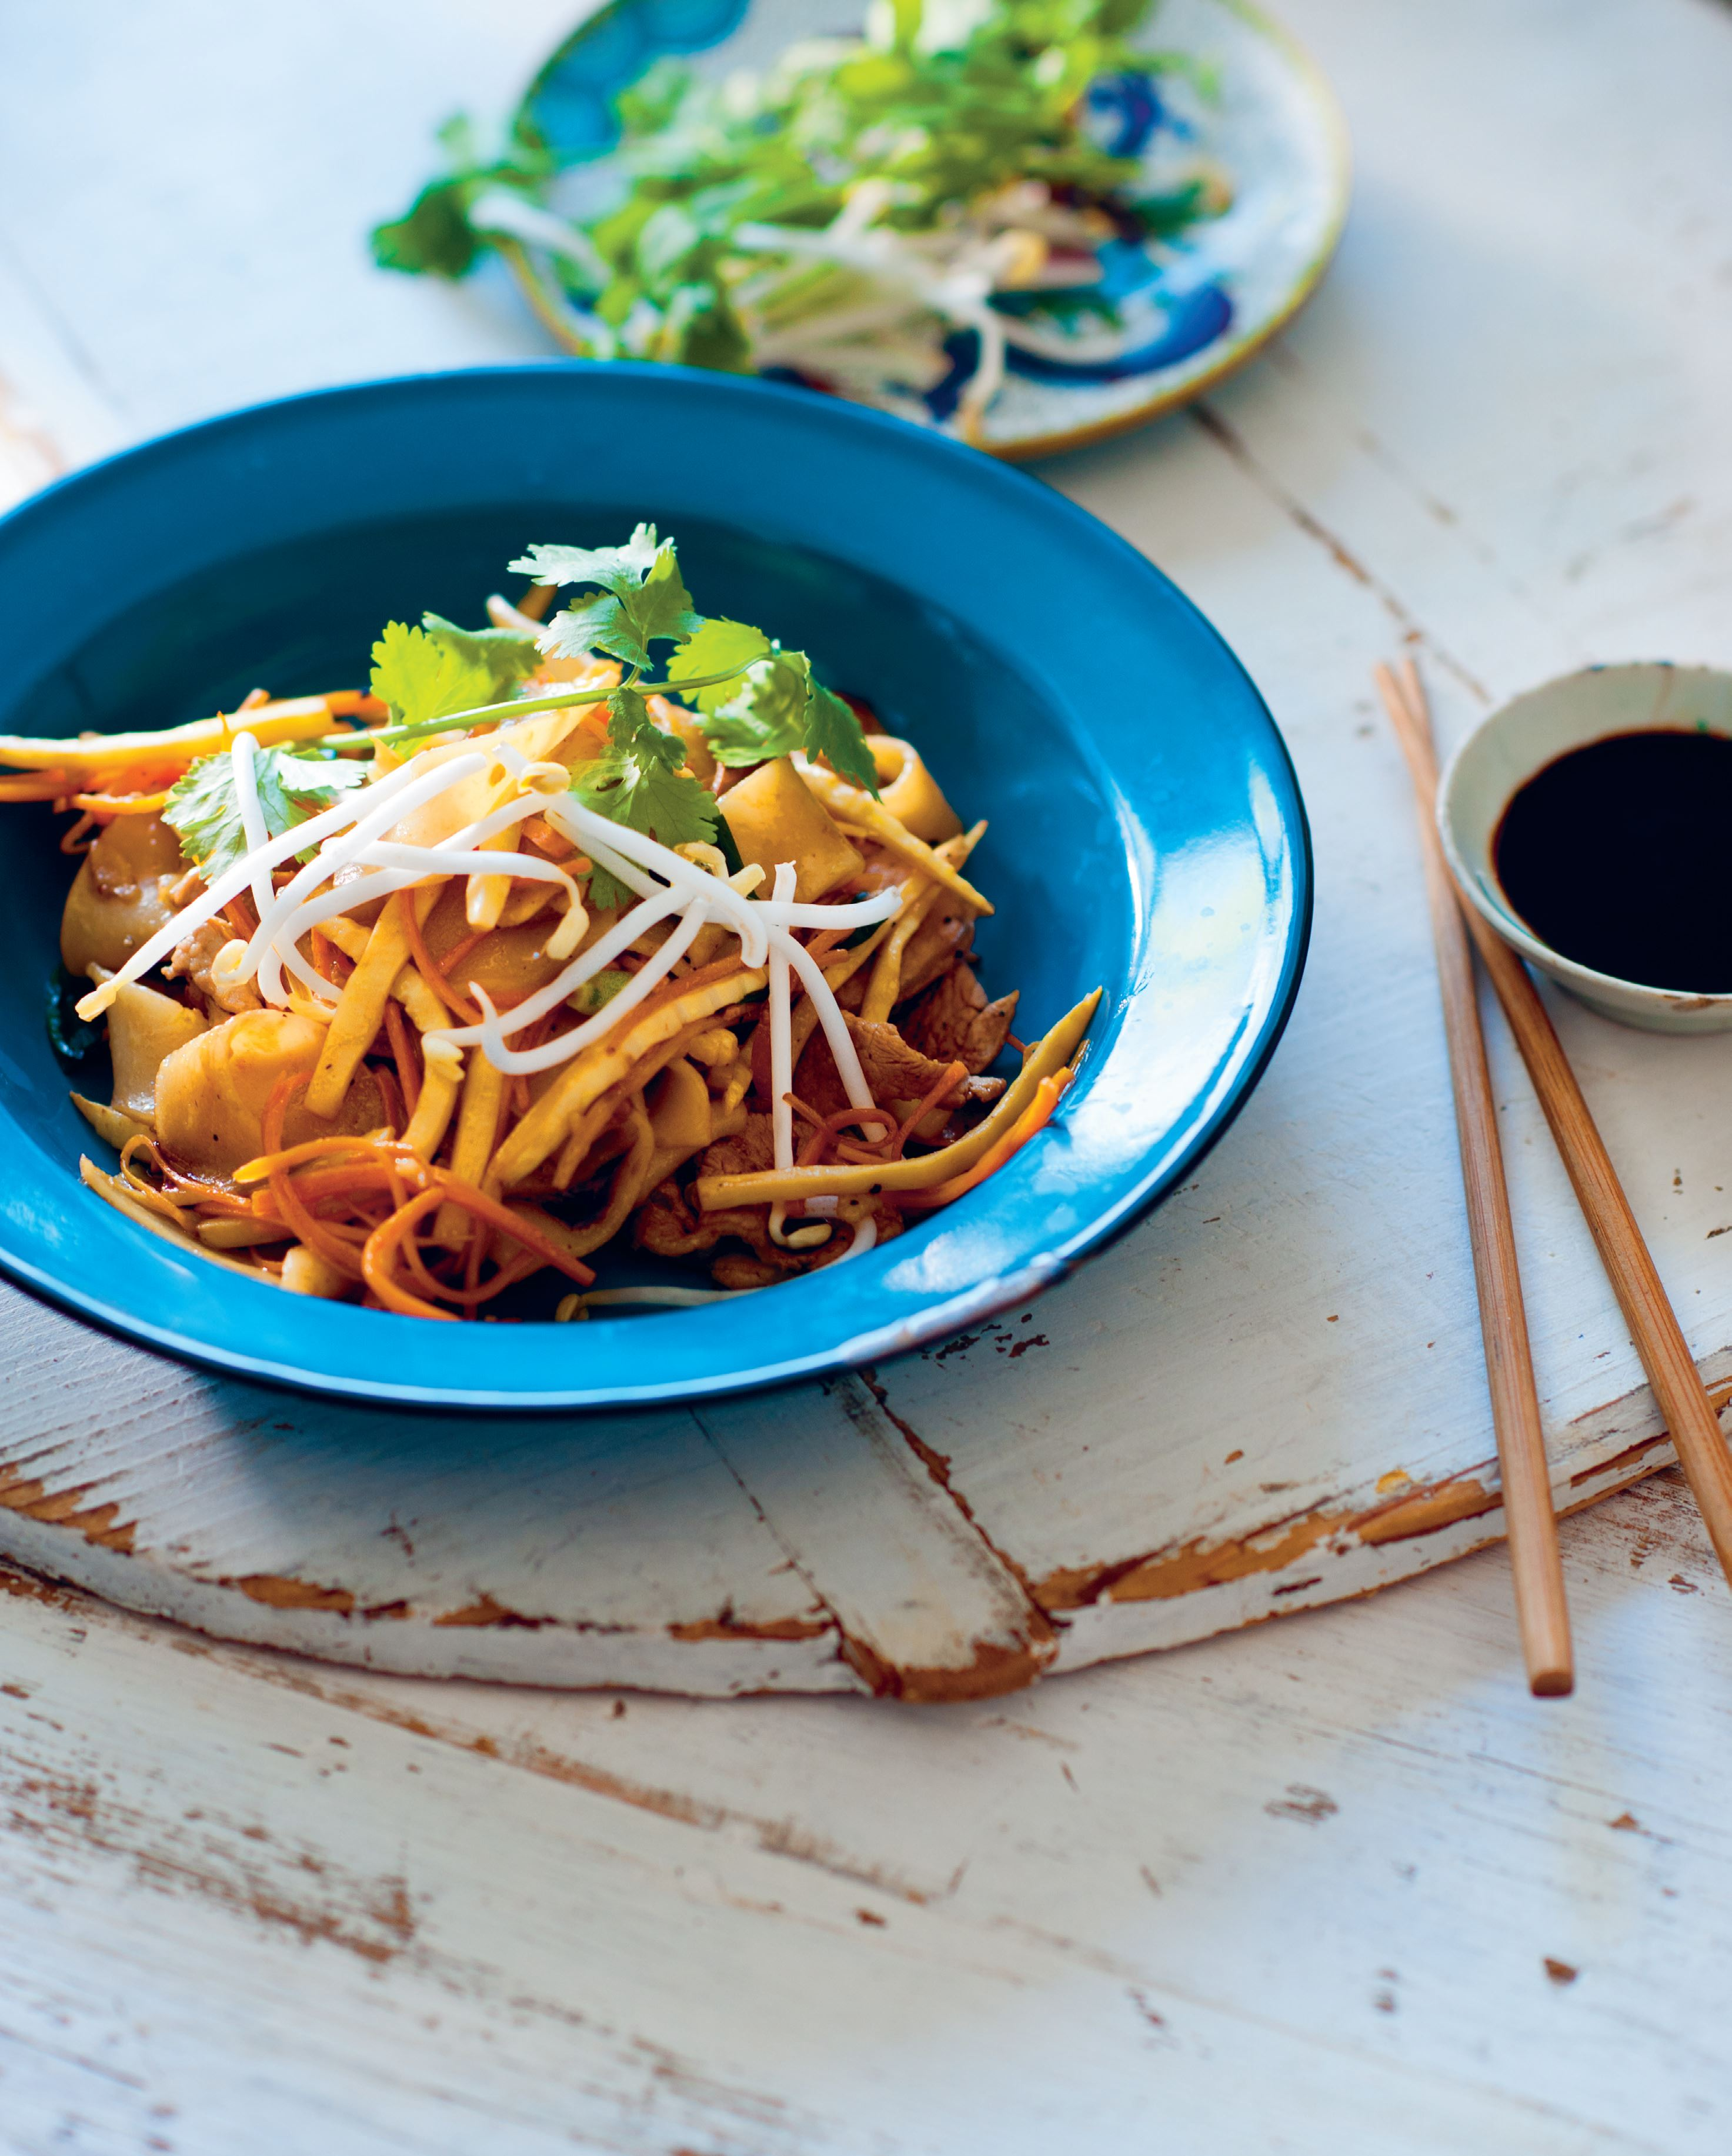 Rice noodles wok-tossed with bamboo and pork